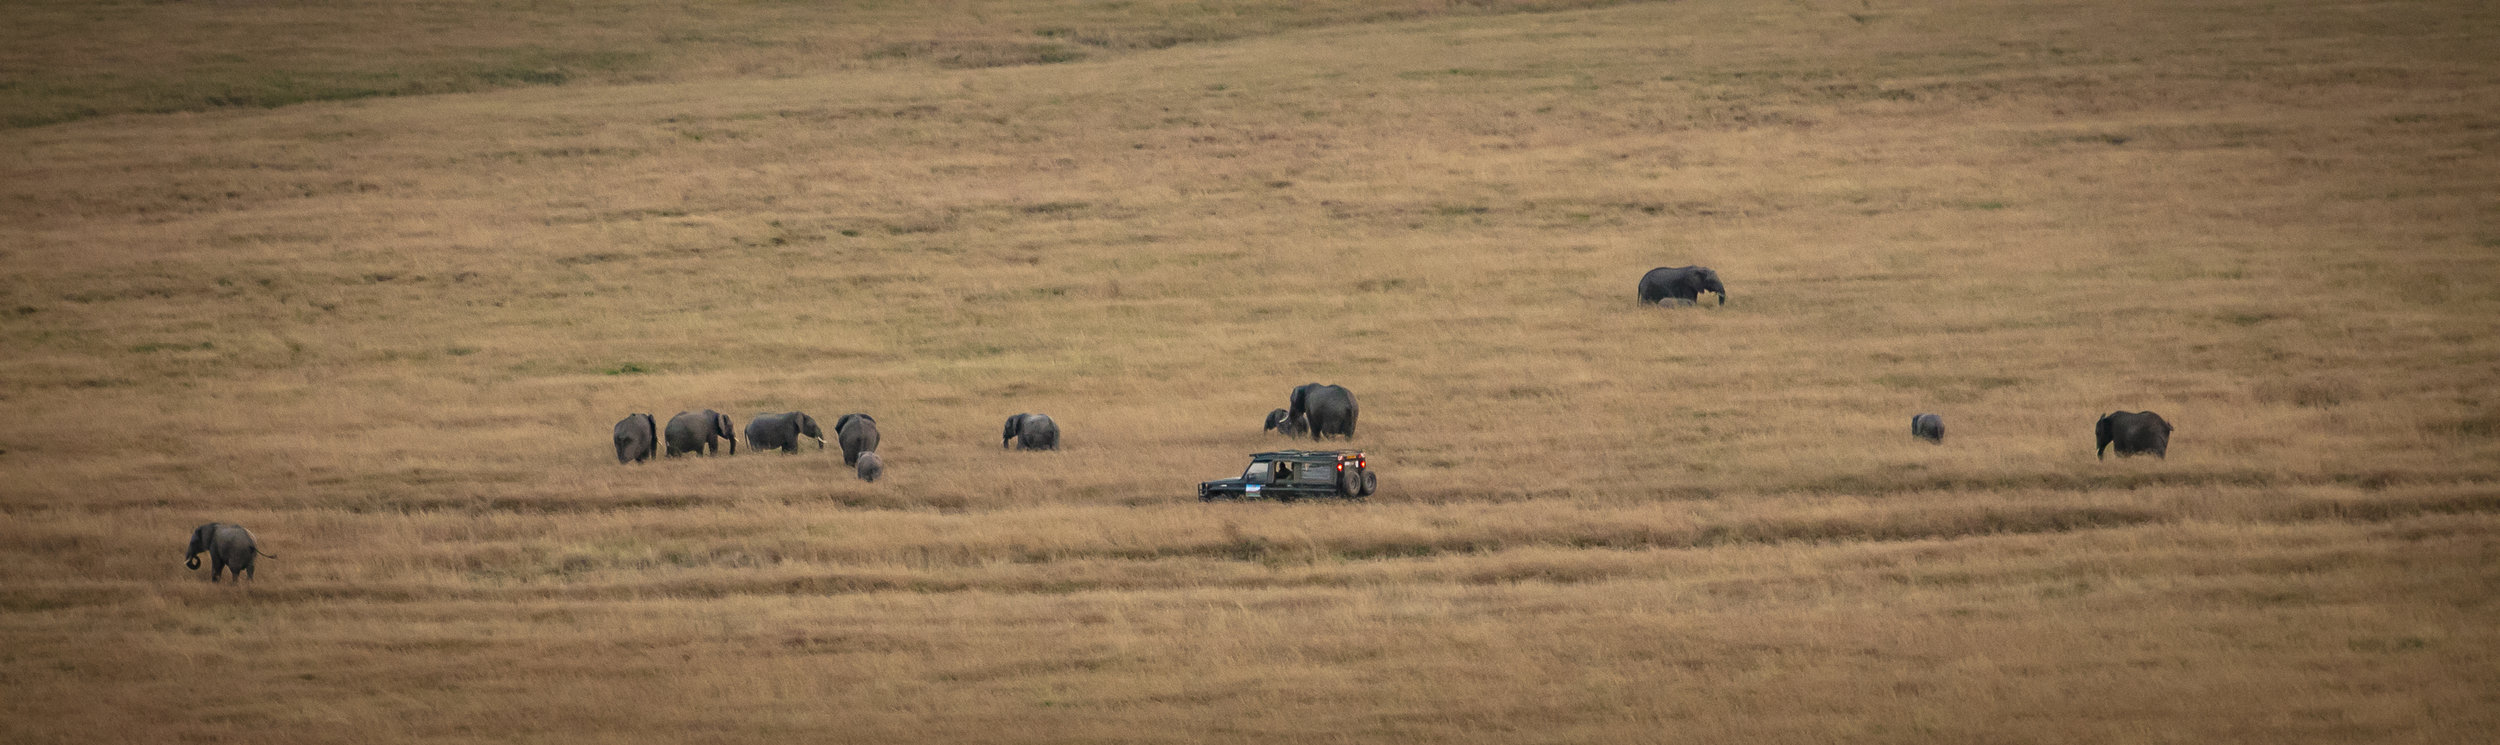 African Adventure - 24 July '18 - Masai Mara National Reserve - 018.JPG